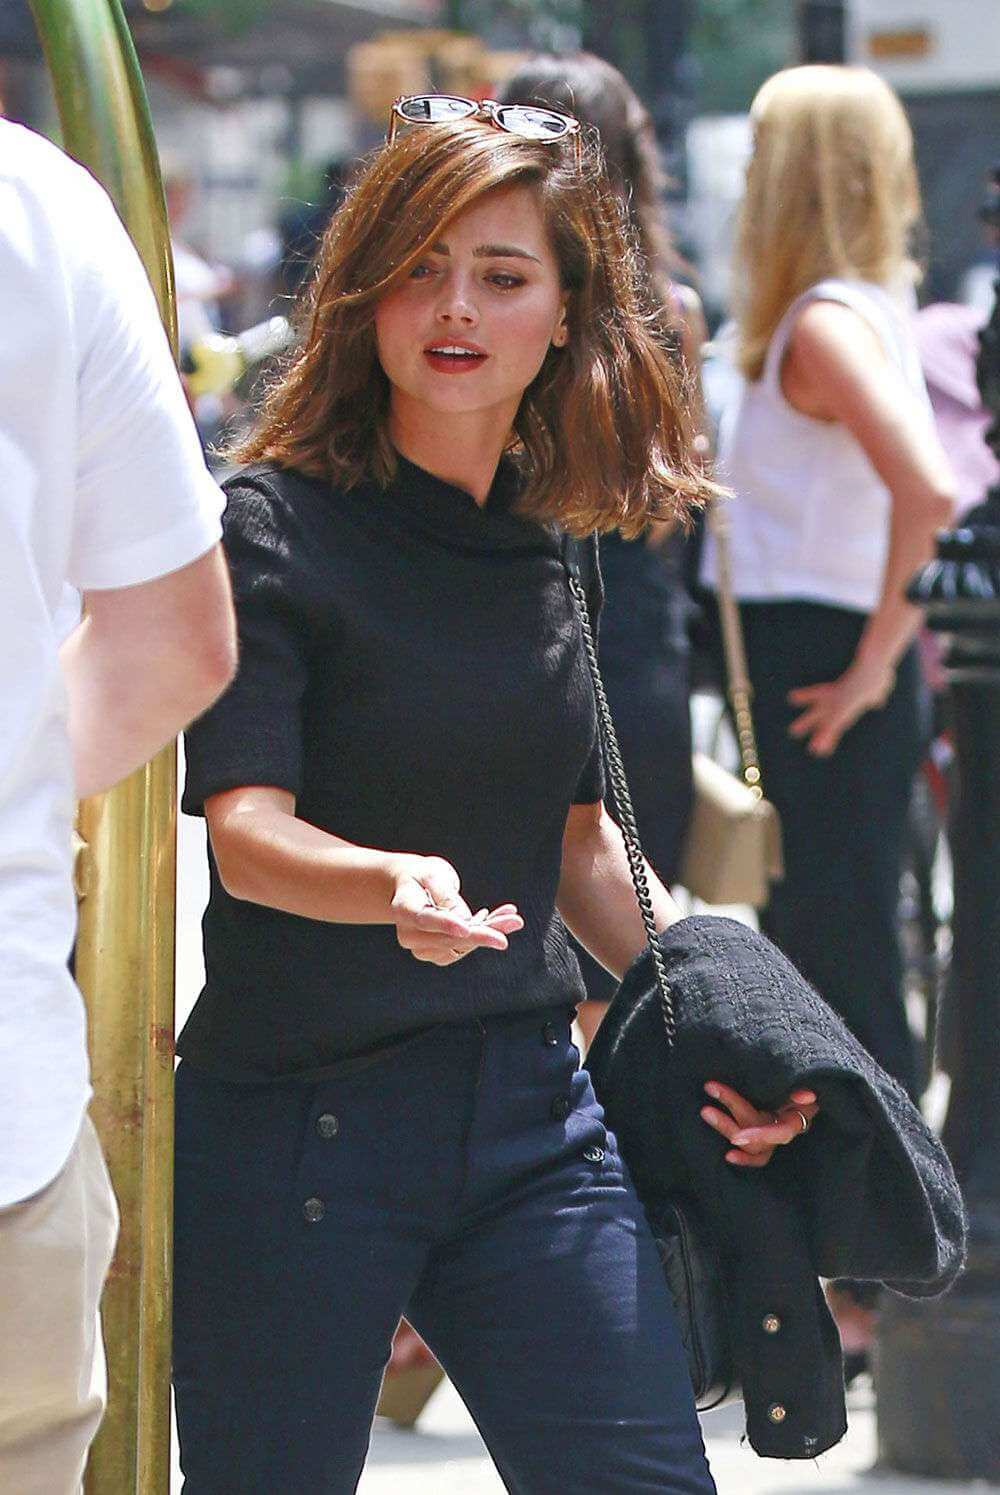 Jenna-Louise Coleman Out in New York City 6